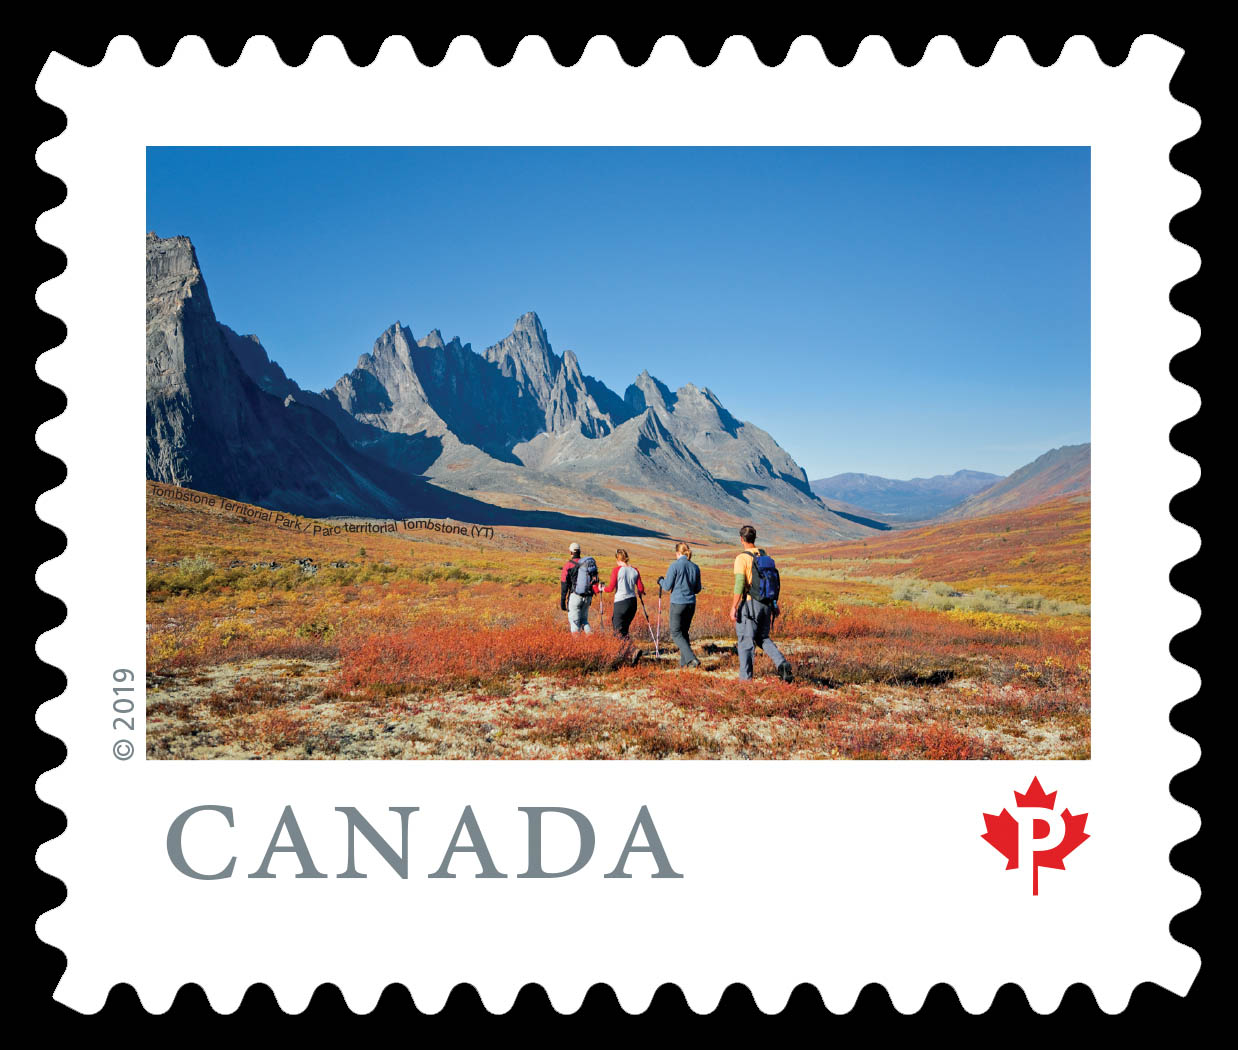 Canada Post stamp rates to increase in 2019 - PrintAction